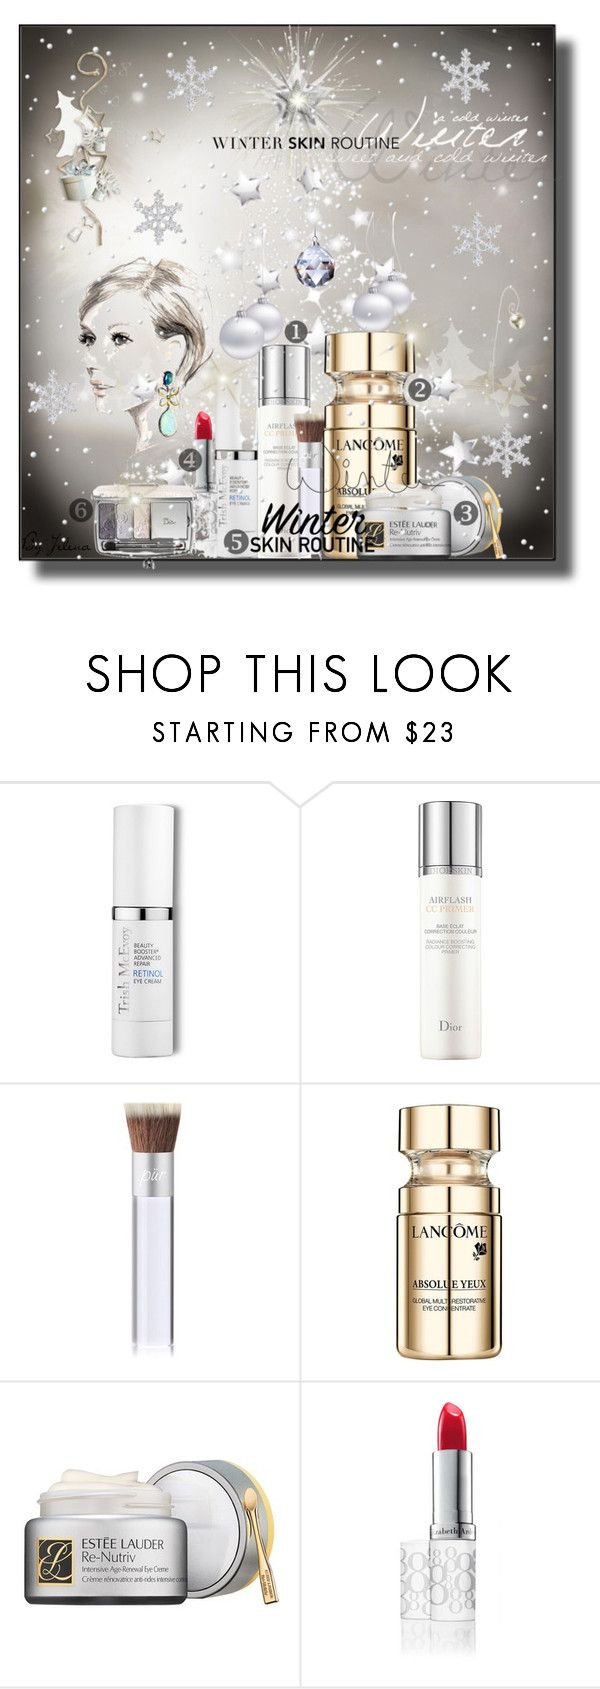 """Winter Skin Routine"" by jelenalazarevicpo ❤ liked on Polyvore featuring beauty, Trish McEvoy, Christian Dior, PurMinerals, Lancôme, Estée Lauder, Elizabeth Arden and Nordstrom"